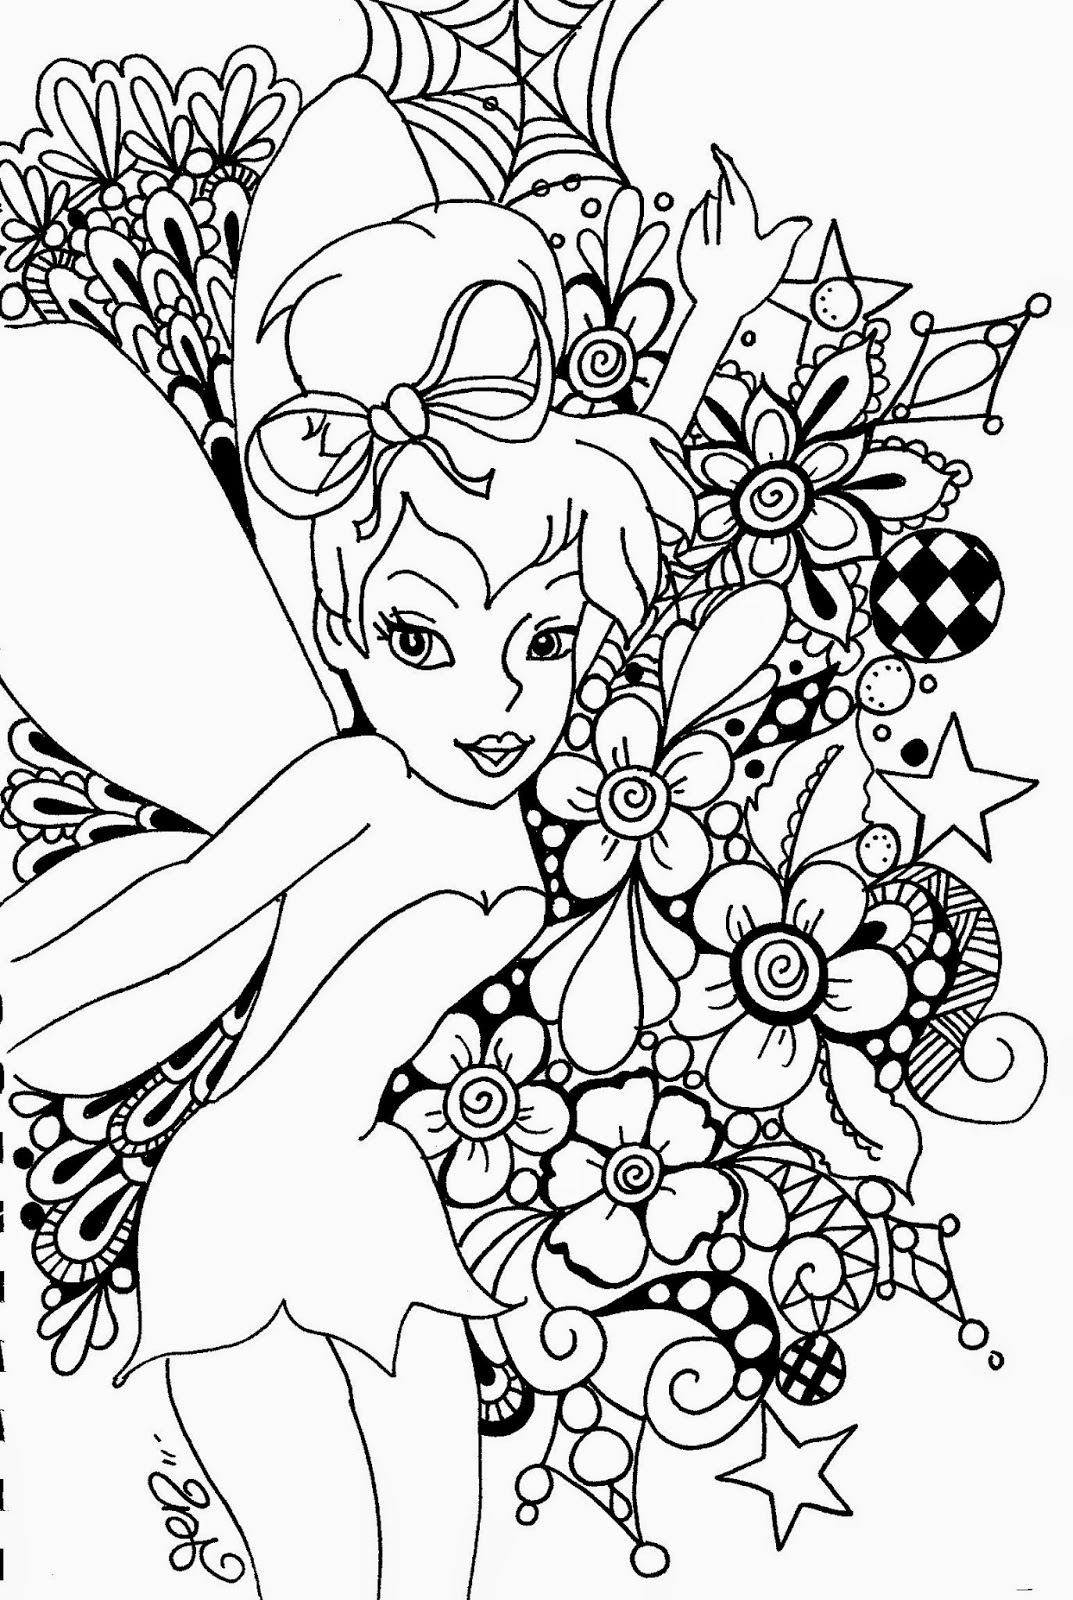 Coloring Pages Tinkerbell Coloring Pages And Clip Art Free And Printable